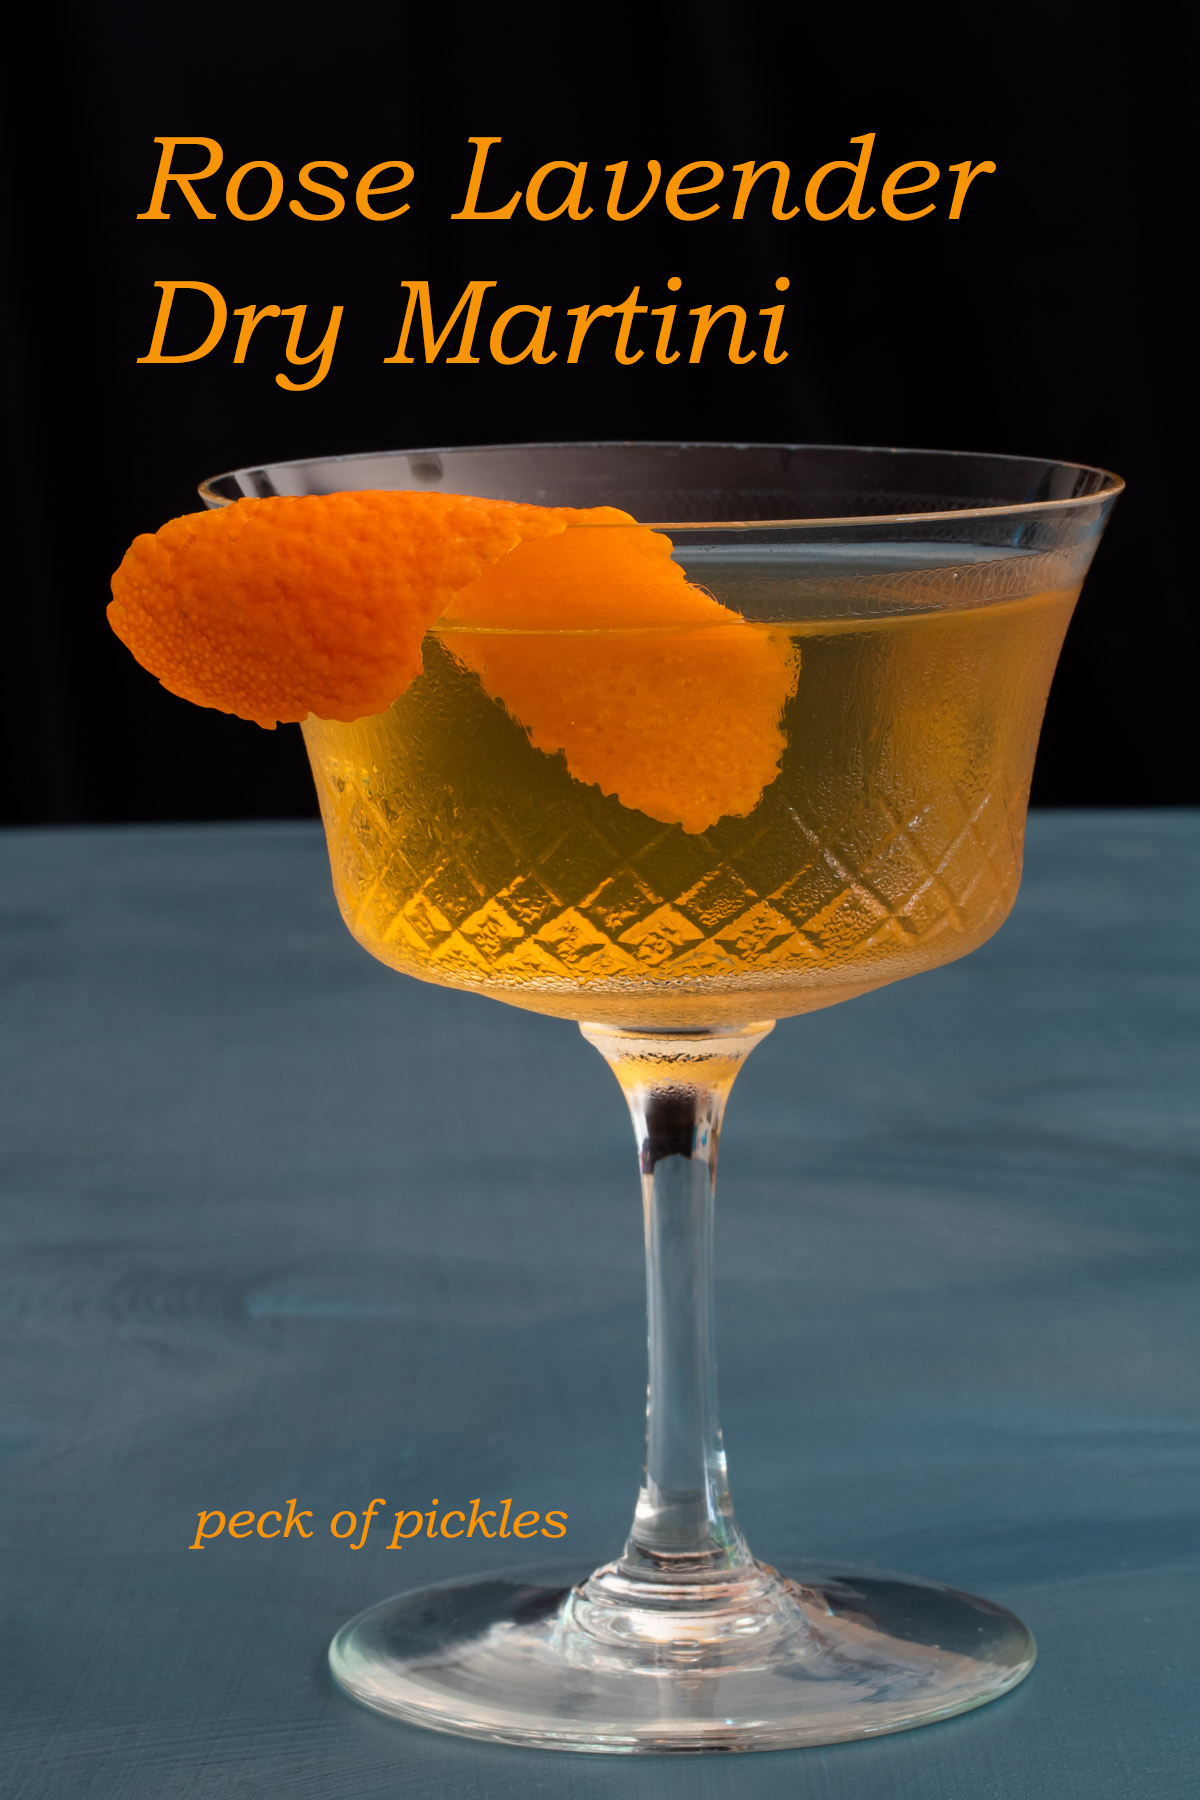 rose lavender dry martini made with cold infused gin